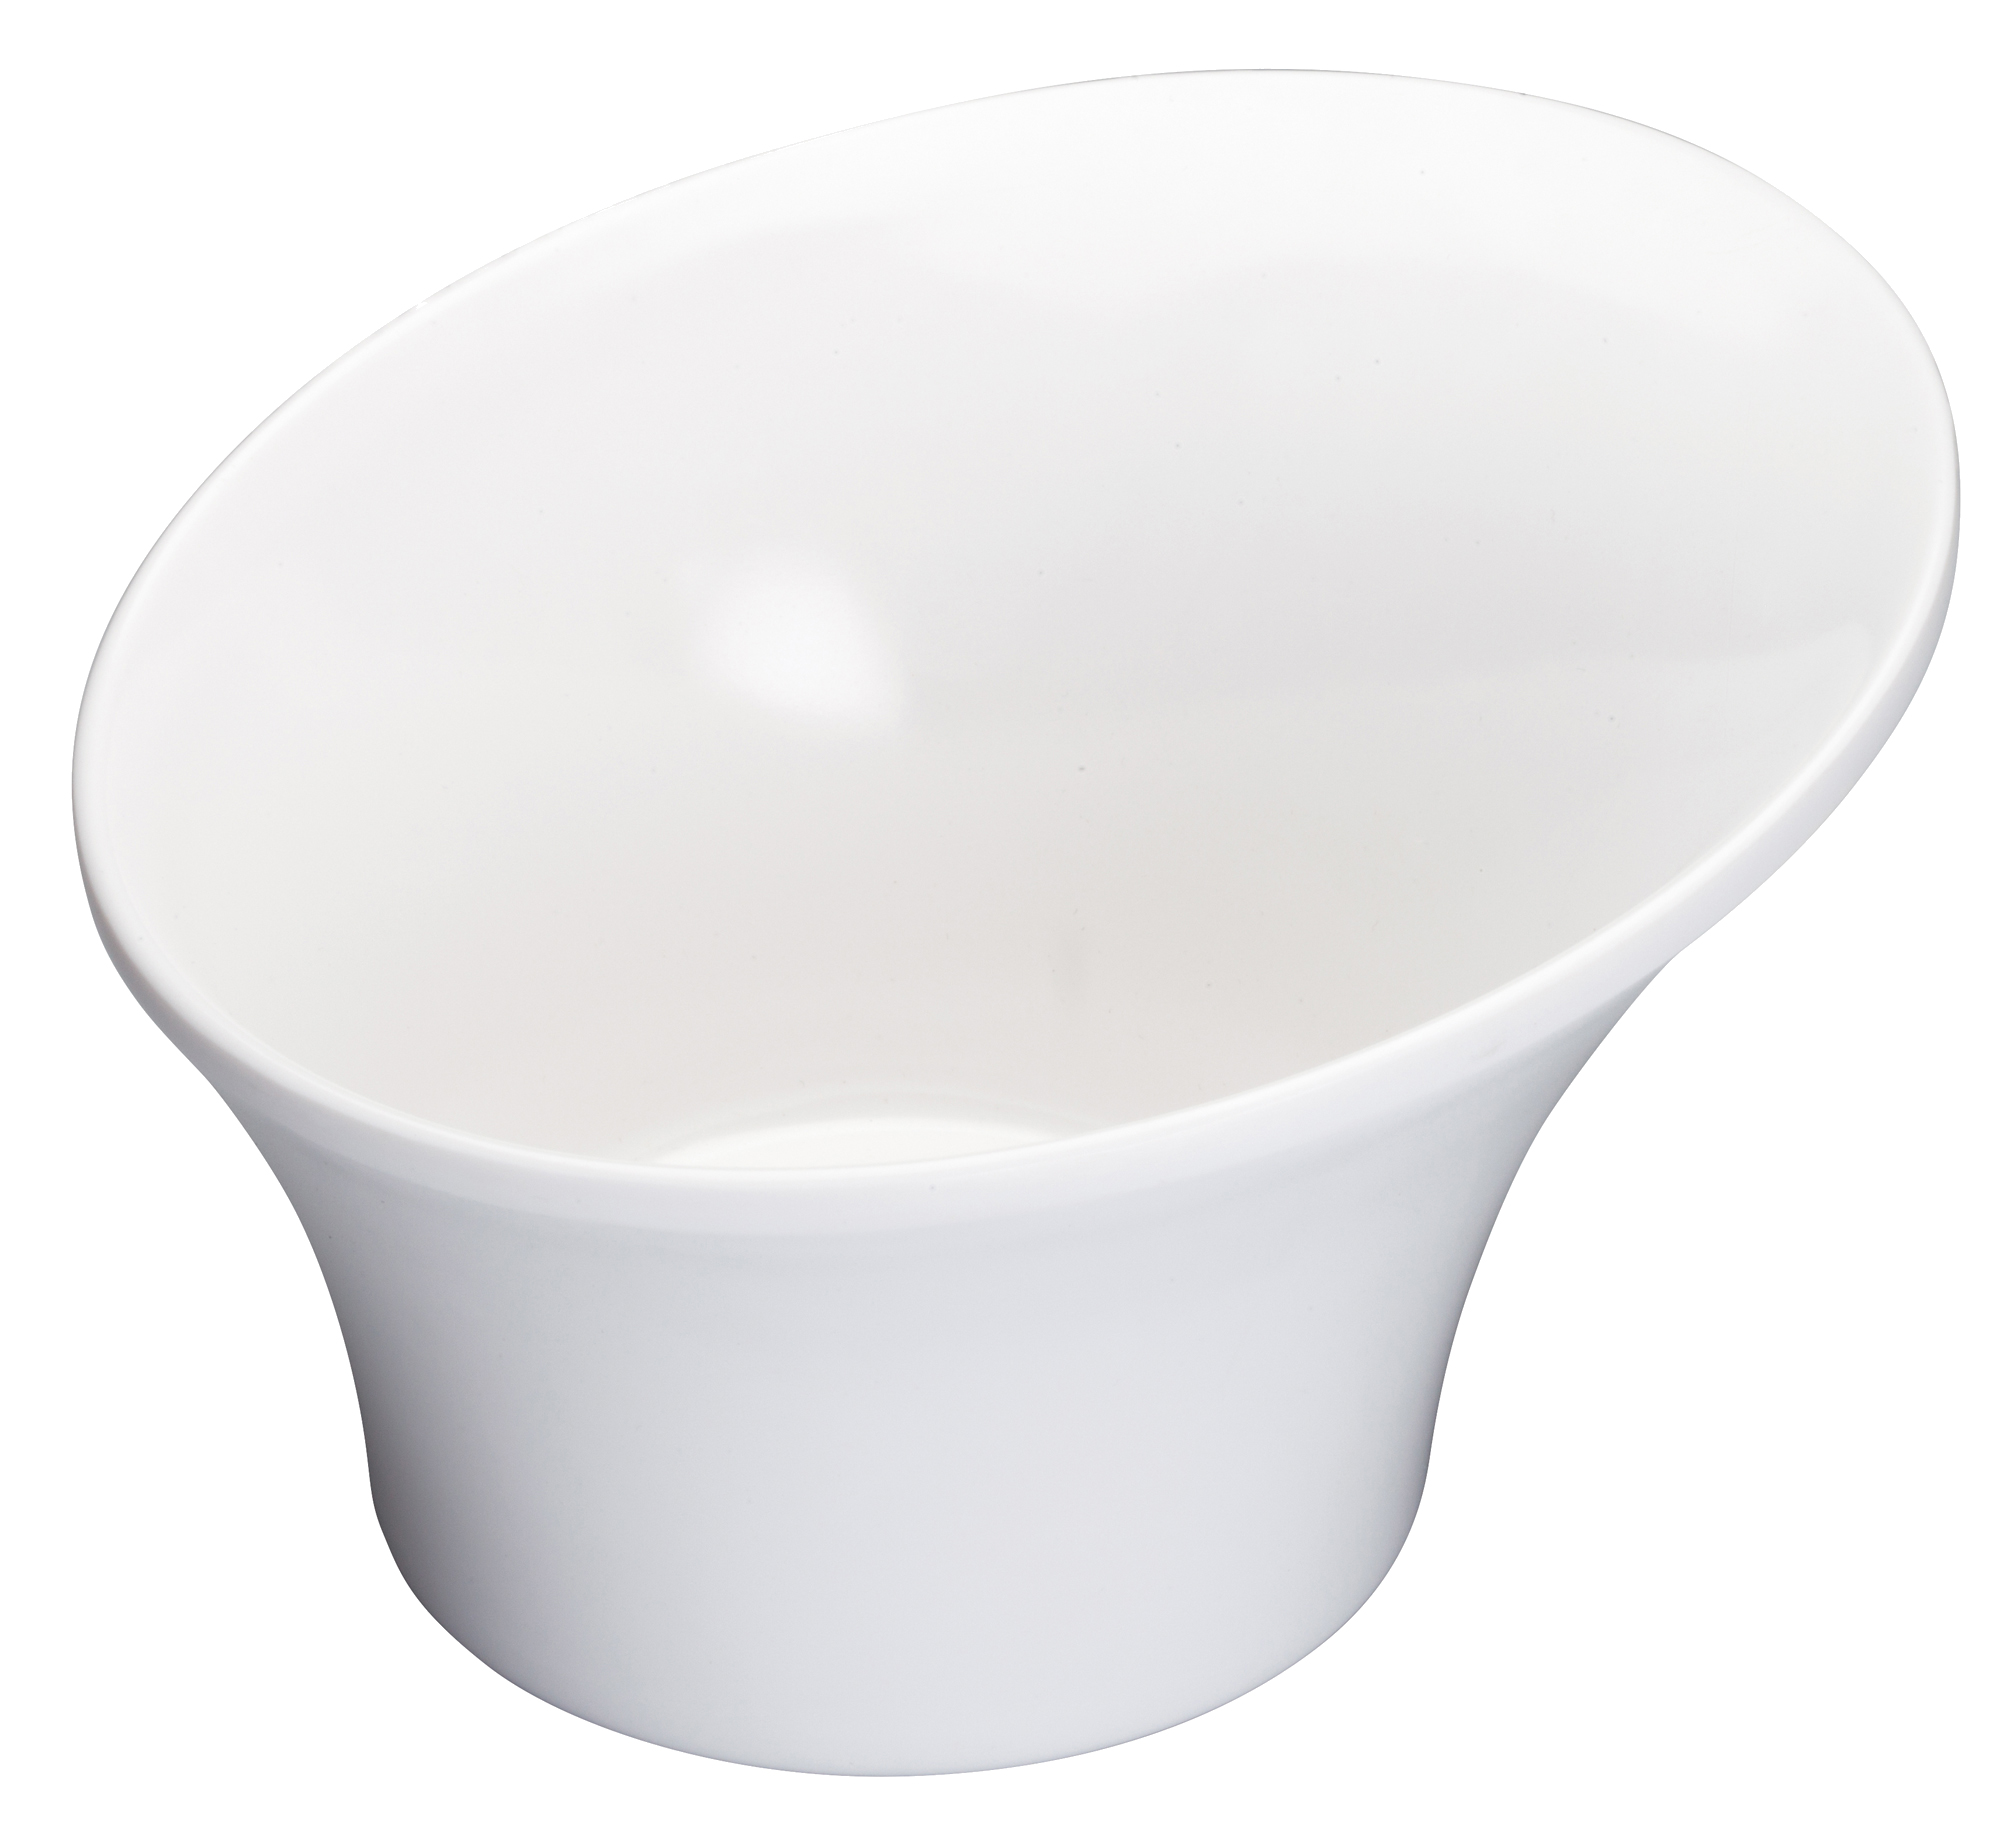 Winco WDM004-201 bowl, plastic,  0 - 31 oz